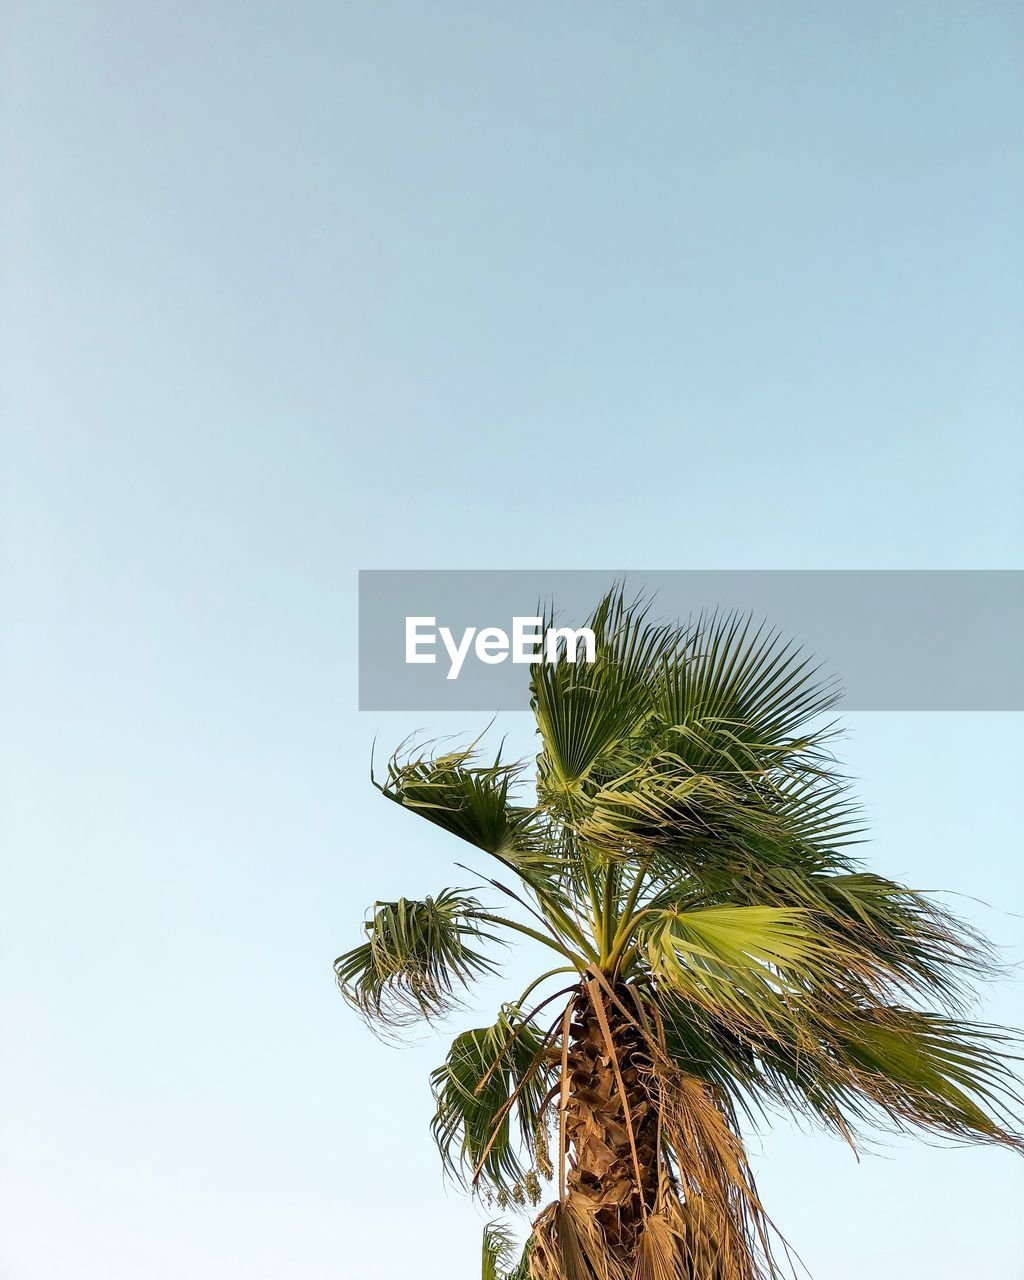 sky, growth, plant, clear sky, copy space, low angle view, nature, tree, palm tree, day, no people, beauty in nature, tropical climate, outdoors, green color, tranquility, leaf, plant part, sunlight, coconut palm tree, palm leaf, tropical tree, sepal